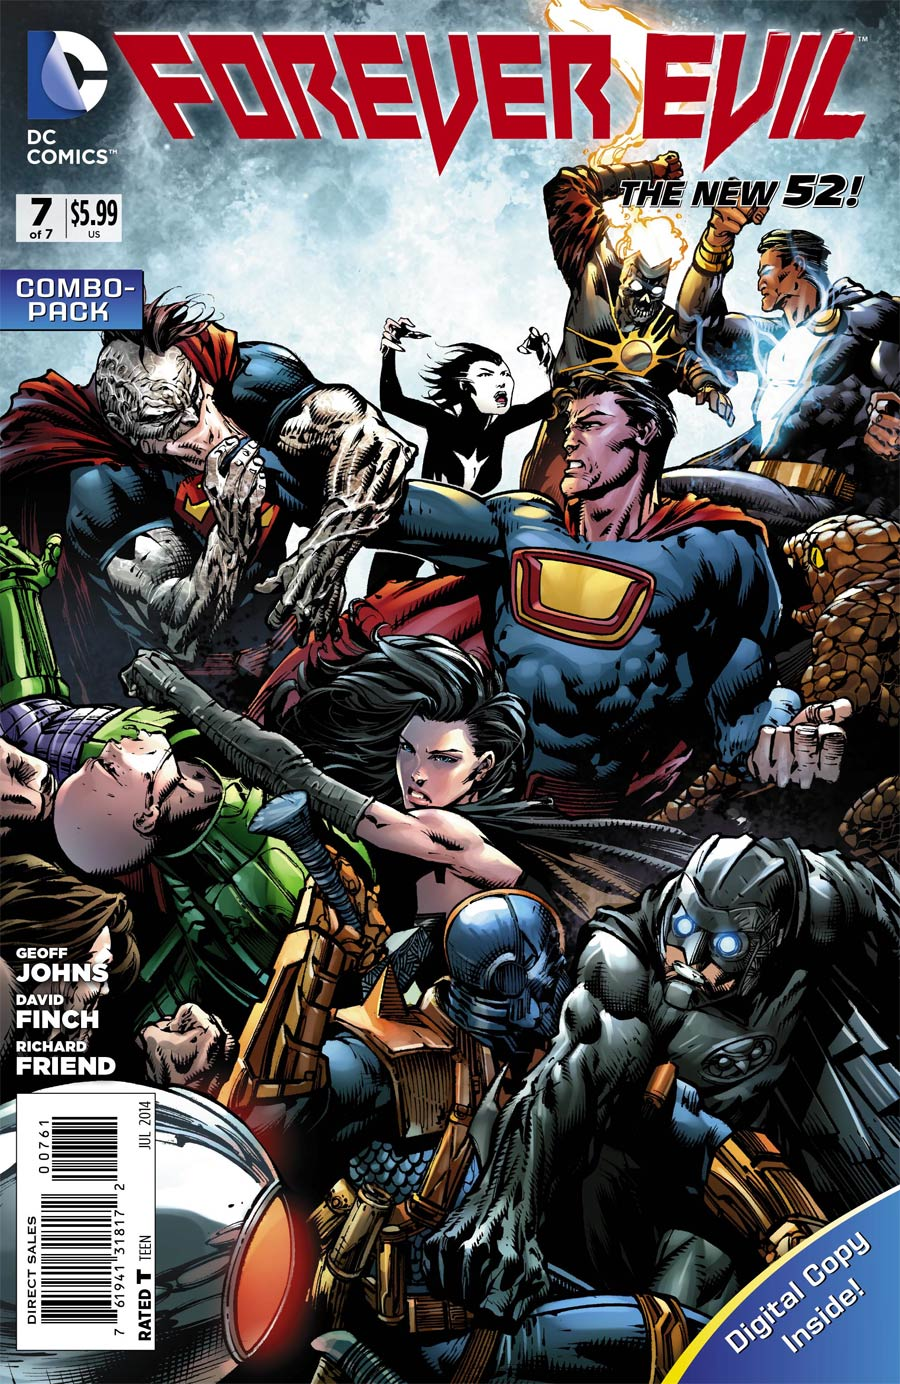 Forever Evil #7 Cover C Combo Pack Without Polybag